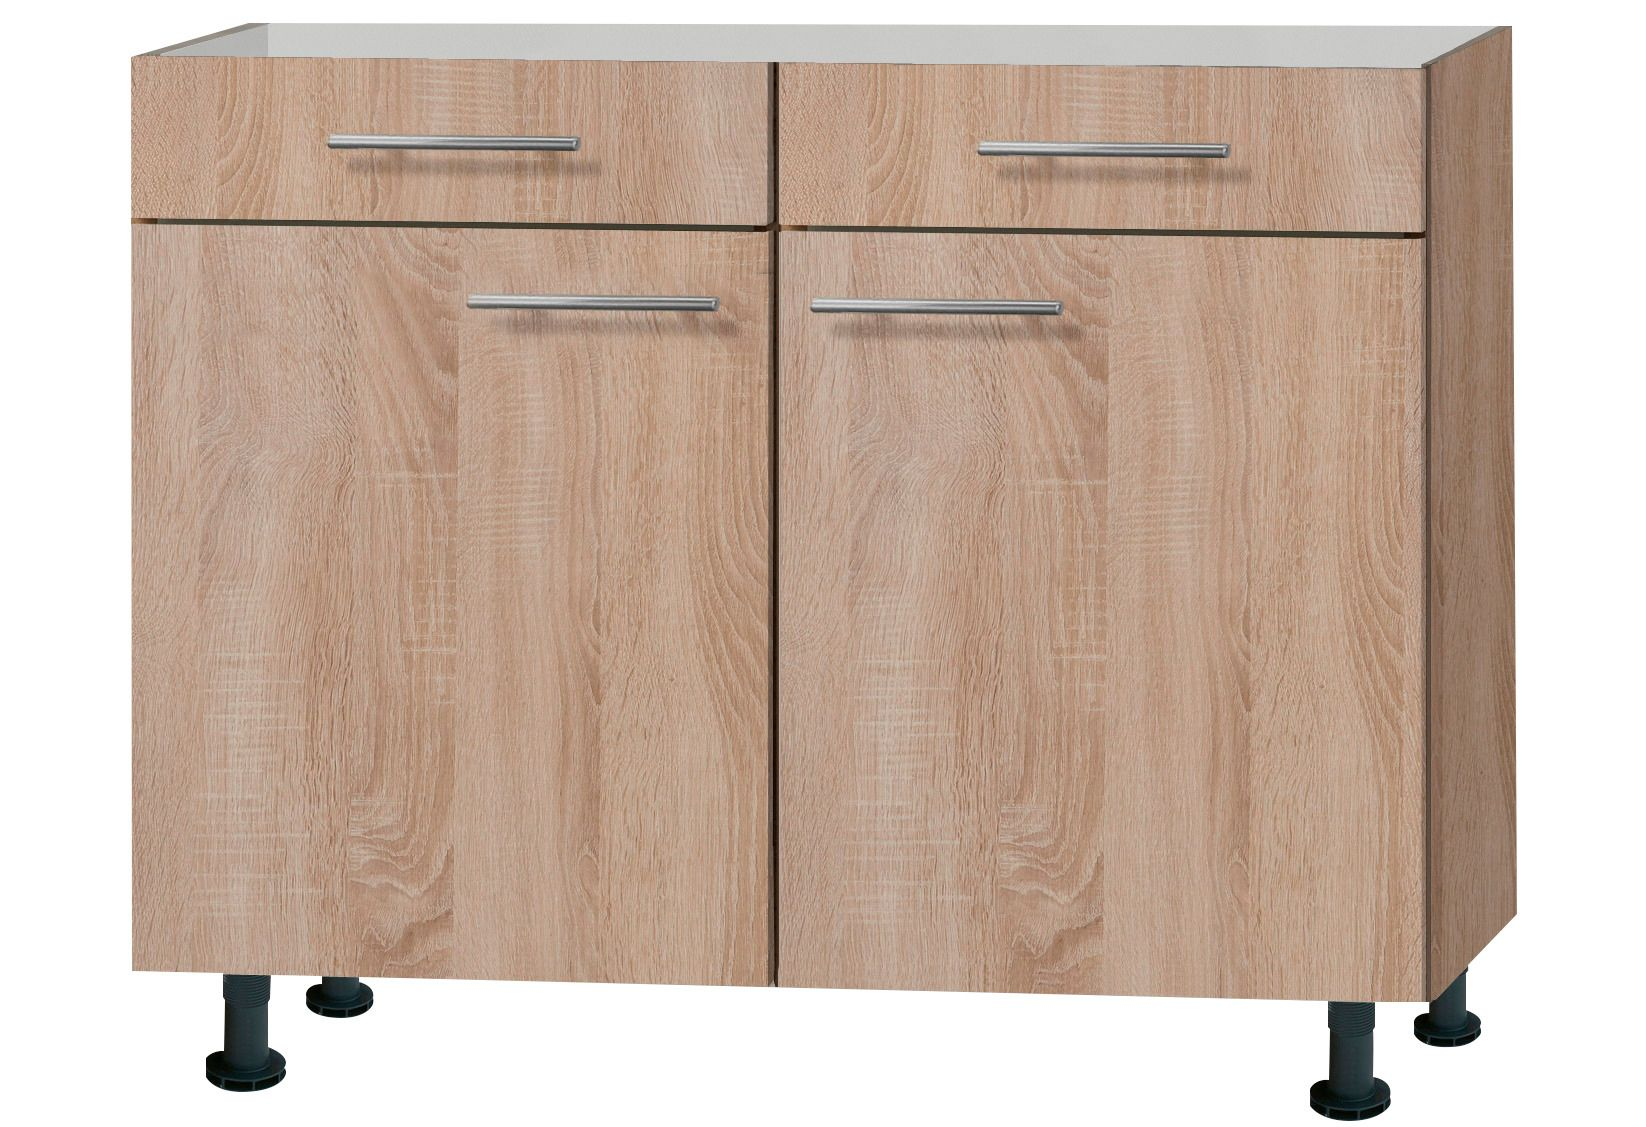 k chenunterschrank lasse breite 100 cm schwab versand k chenunterschr nke. Black Bedroom Furniture Sets. Home Design Ideas